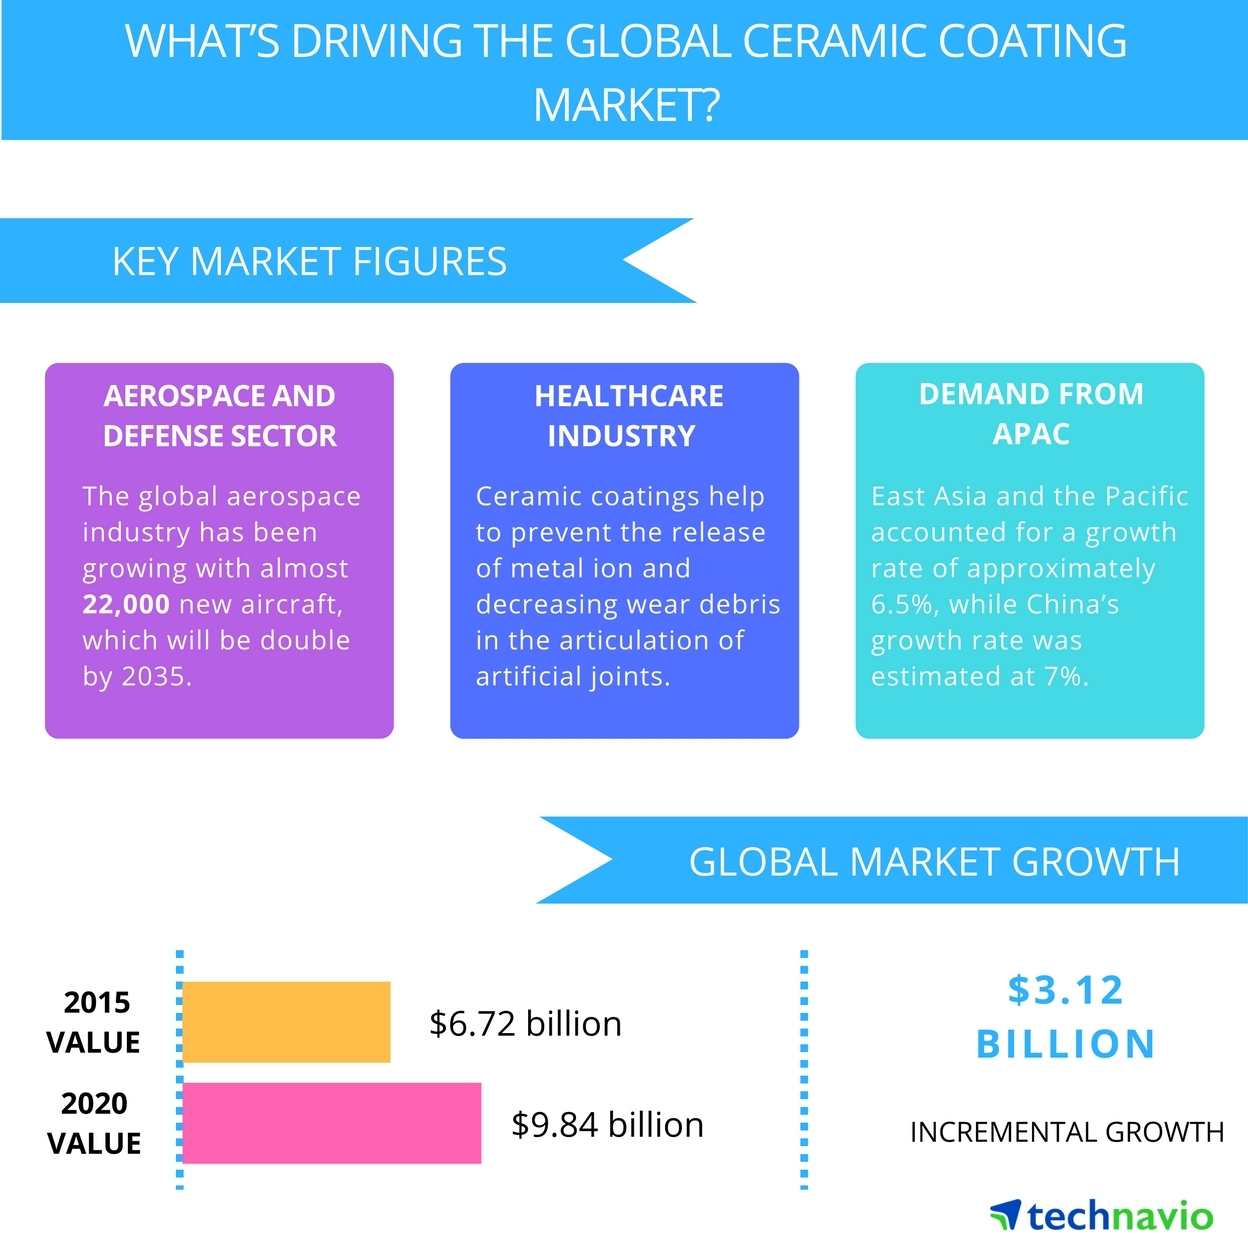 Best Ceramic Coating For Cars 2020 Top 5 Vendors in the Ceramic Coating Market from 2016 to 2020